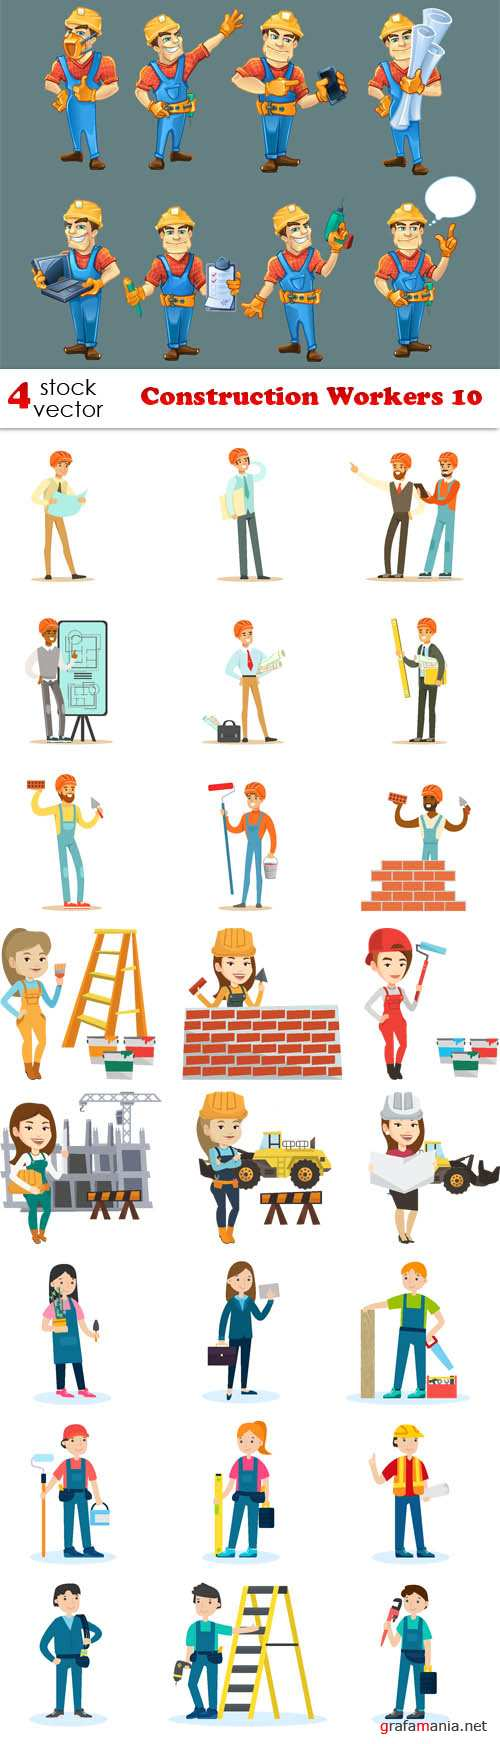 Vectors - Construction Workers 10